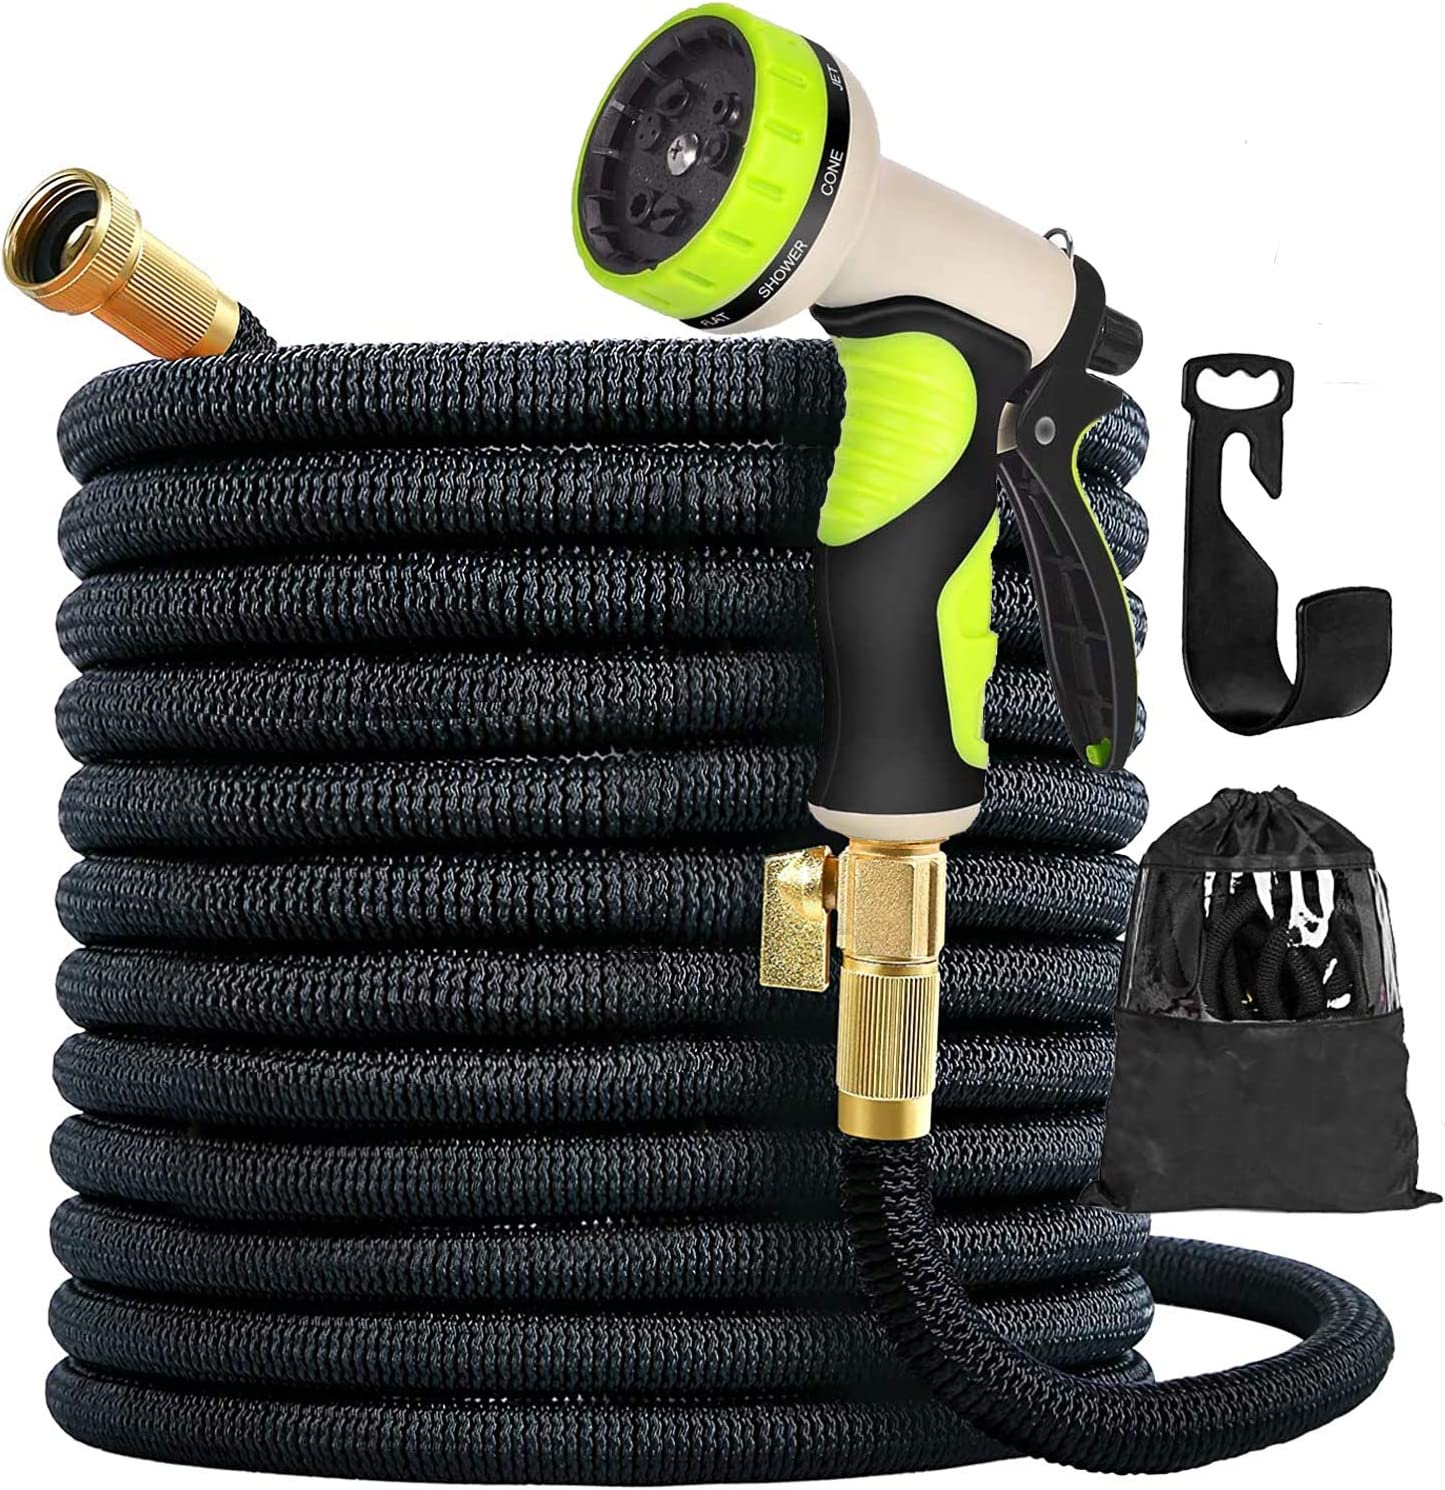 100ft New Expandable Garden Hose - Superior Strength 3750D, 4-Layers Latex with 3/4